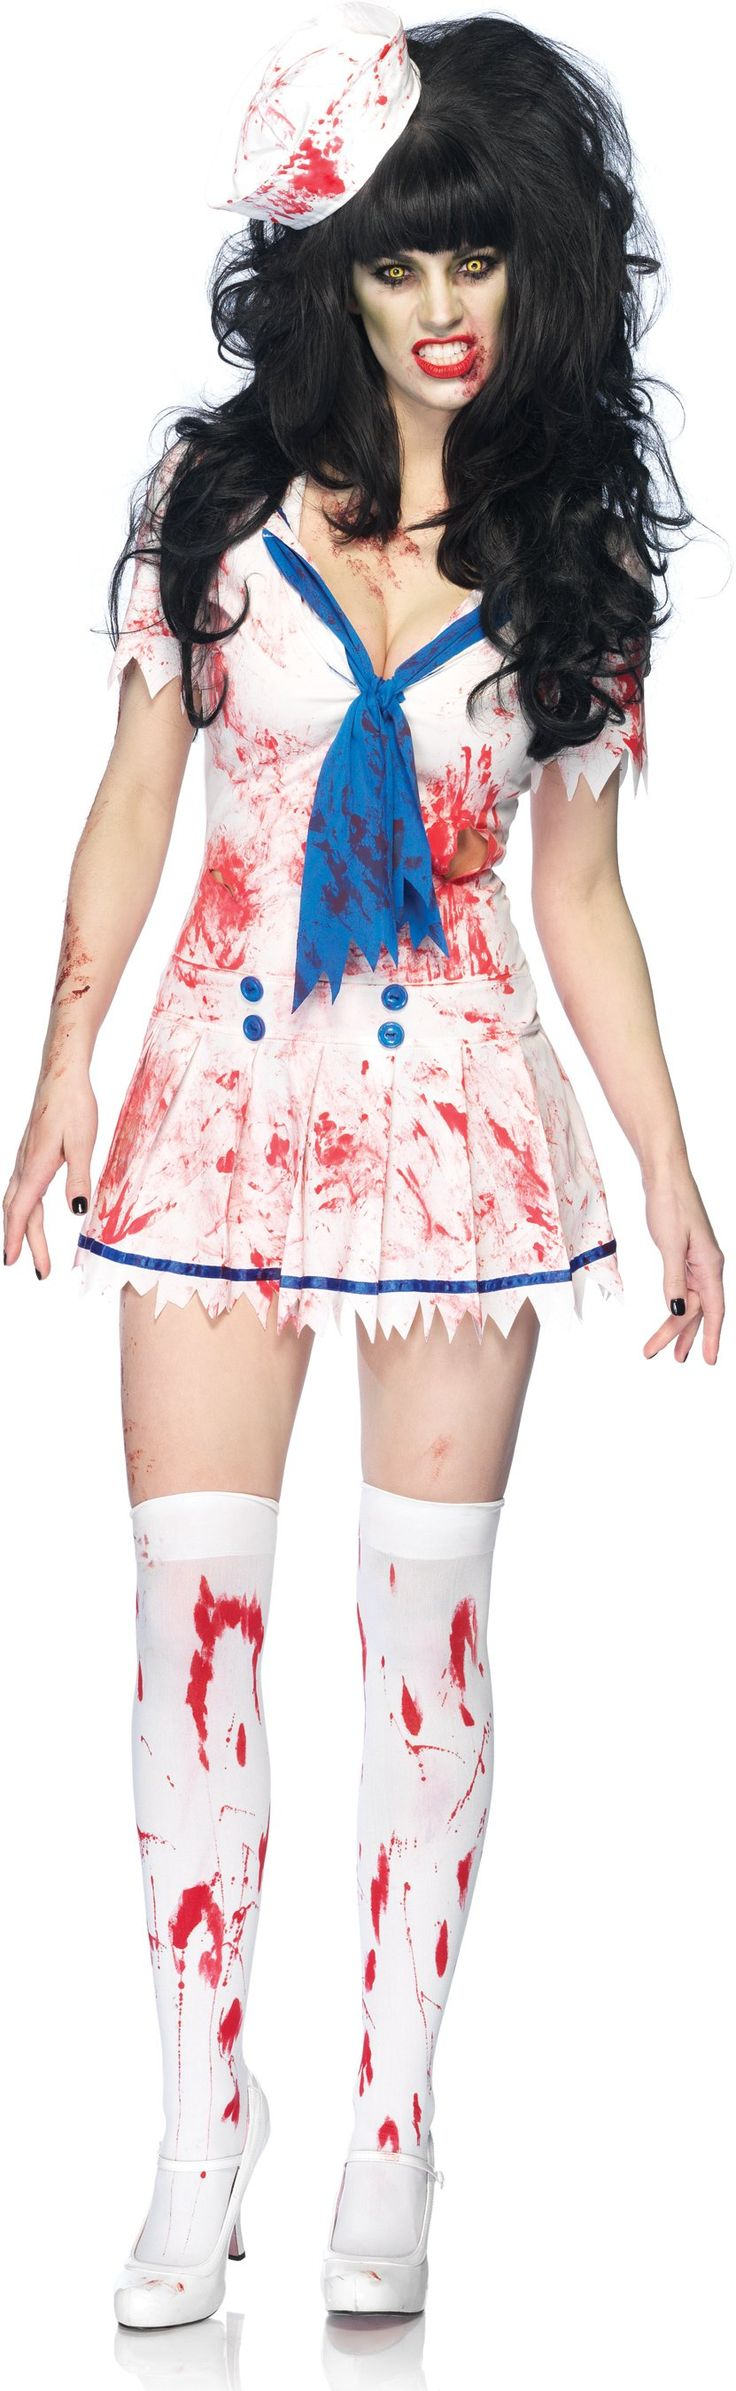 Decaying Sailor Debbie Adult Costume,$54.99